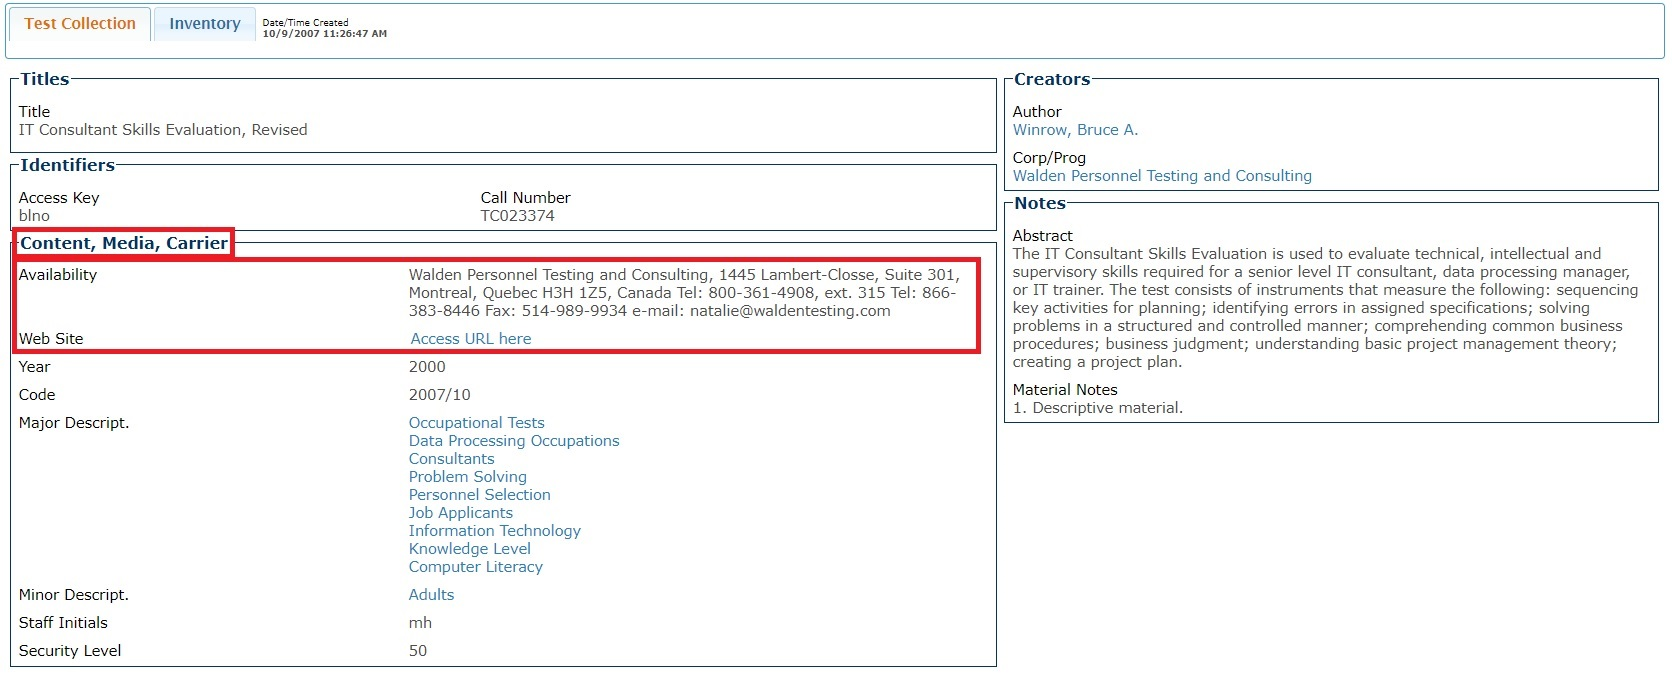 ETS TestLink search result record showing Availabilityand Access fields under Content, Media, Carrier Section